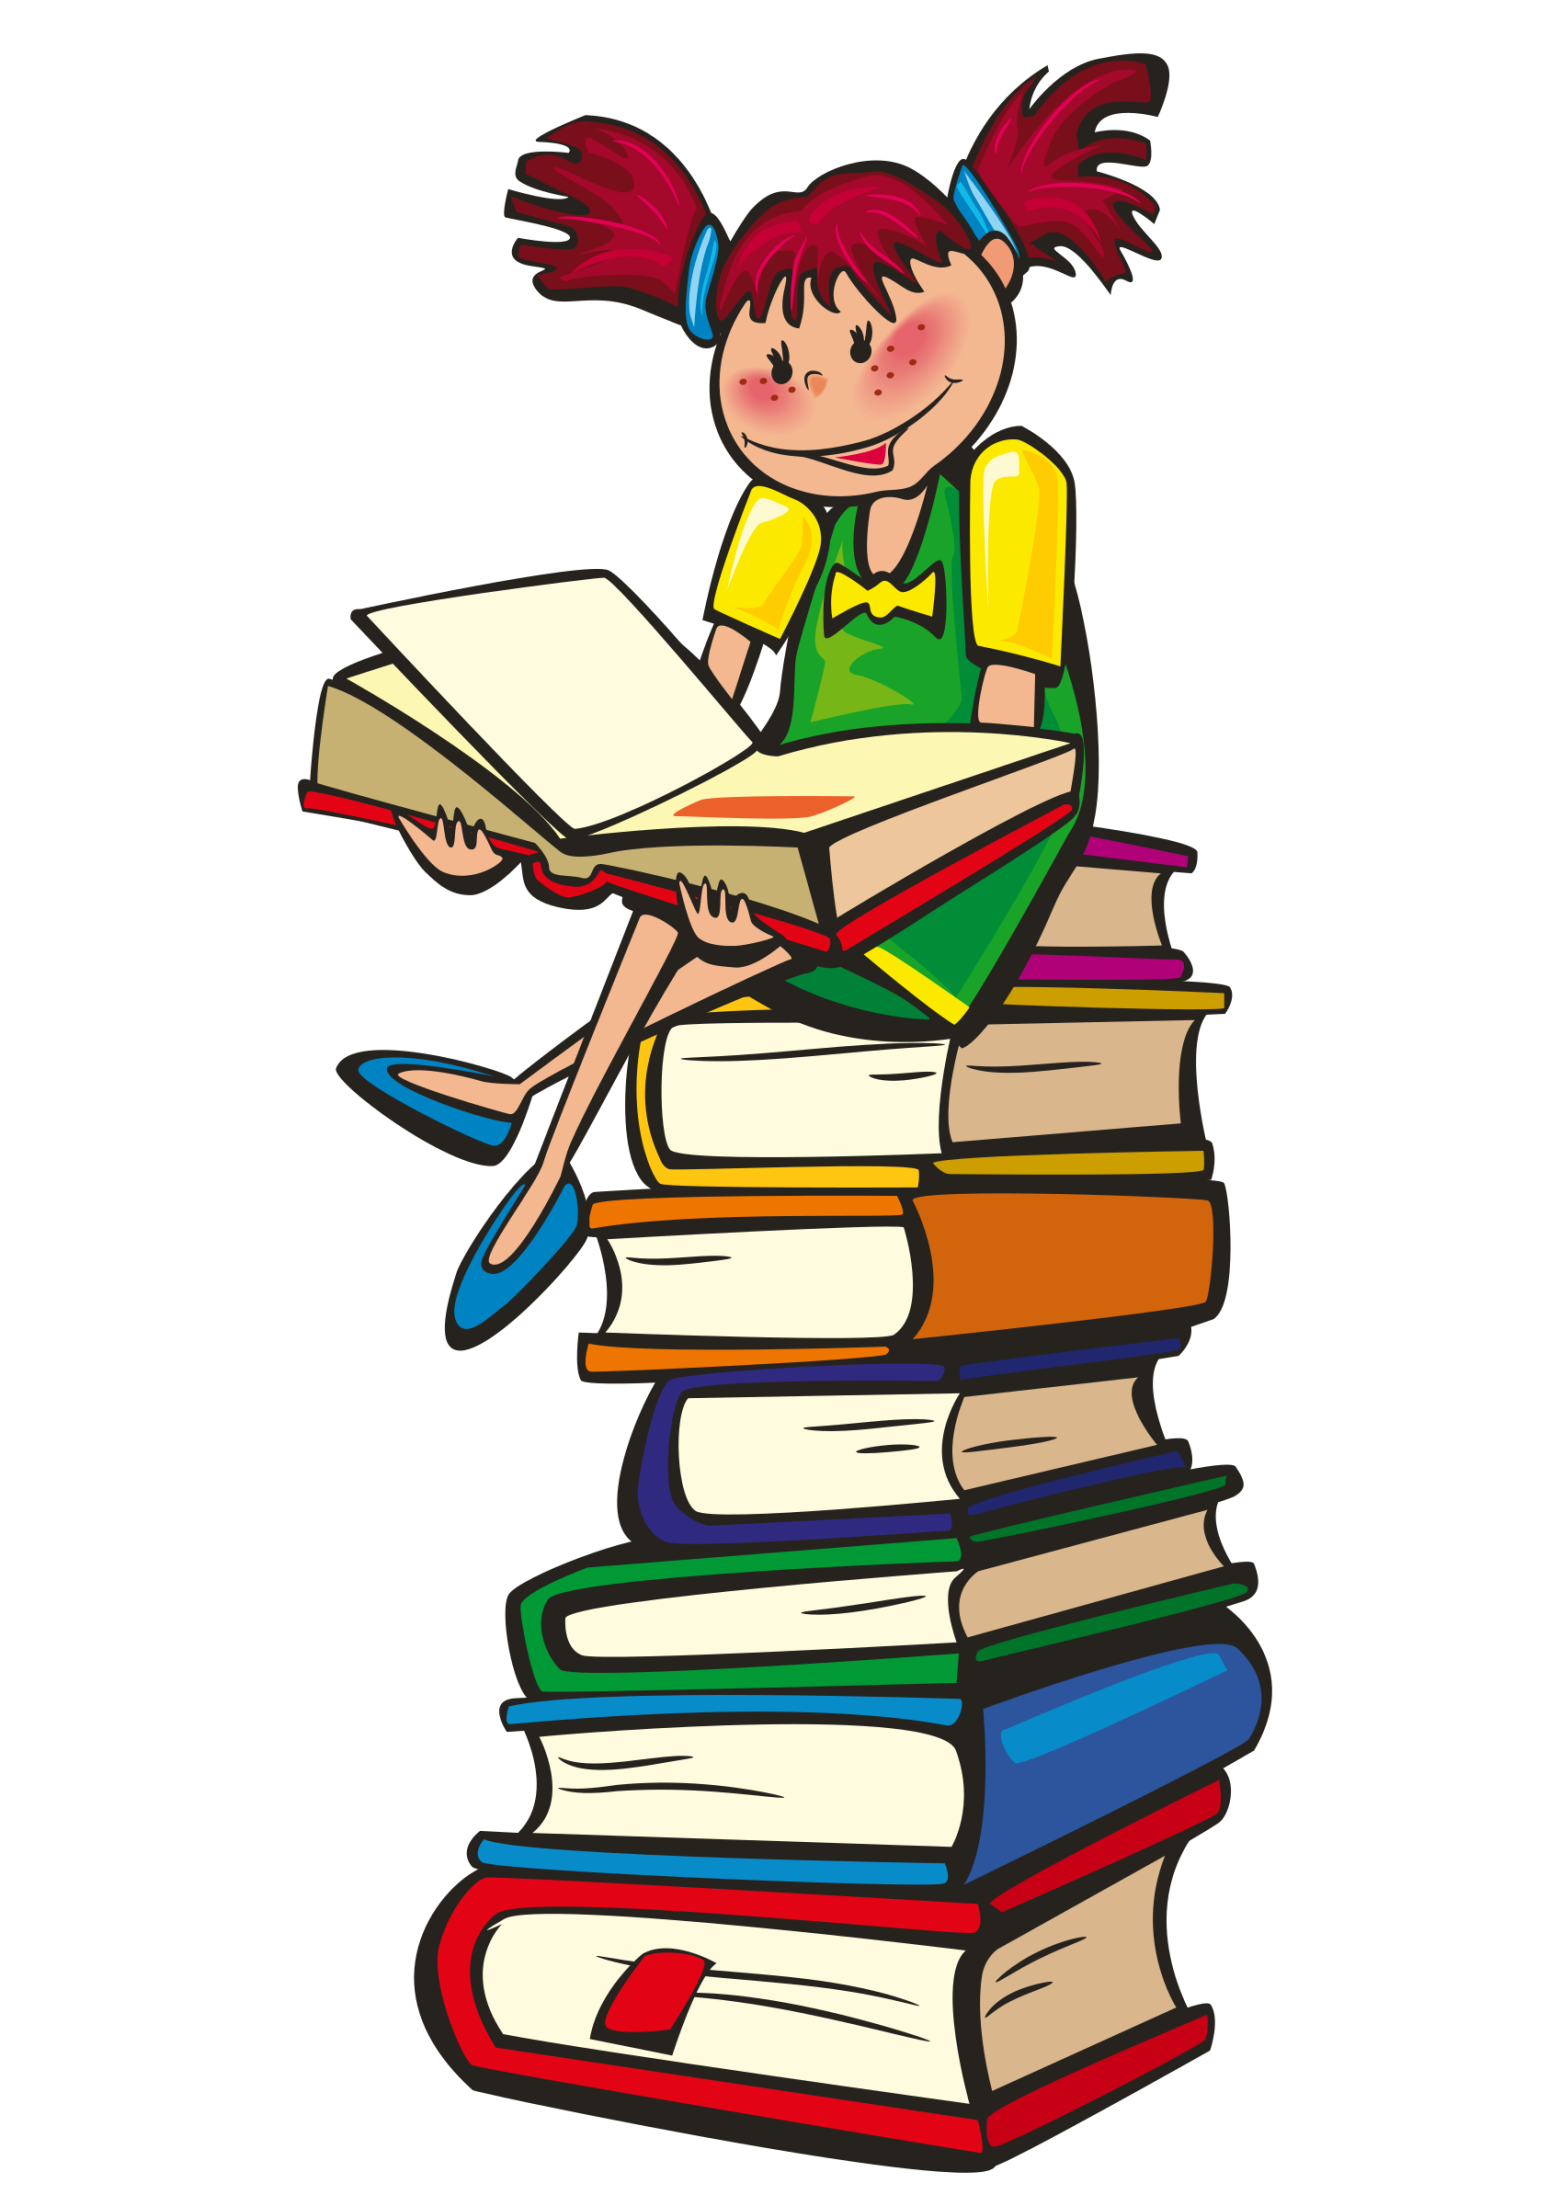 Livres Bibliotheque Clipart 2 Clipart Station